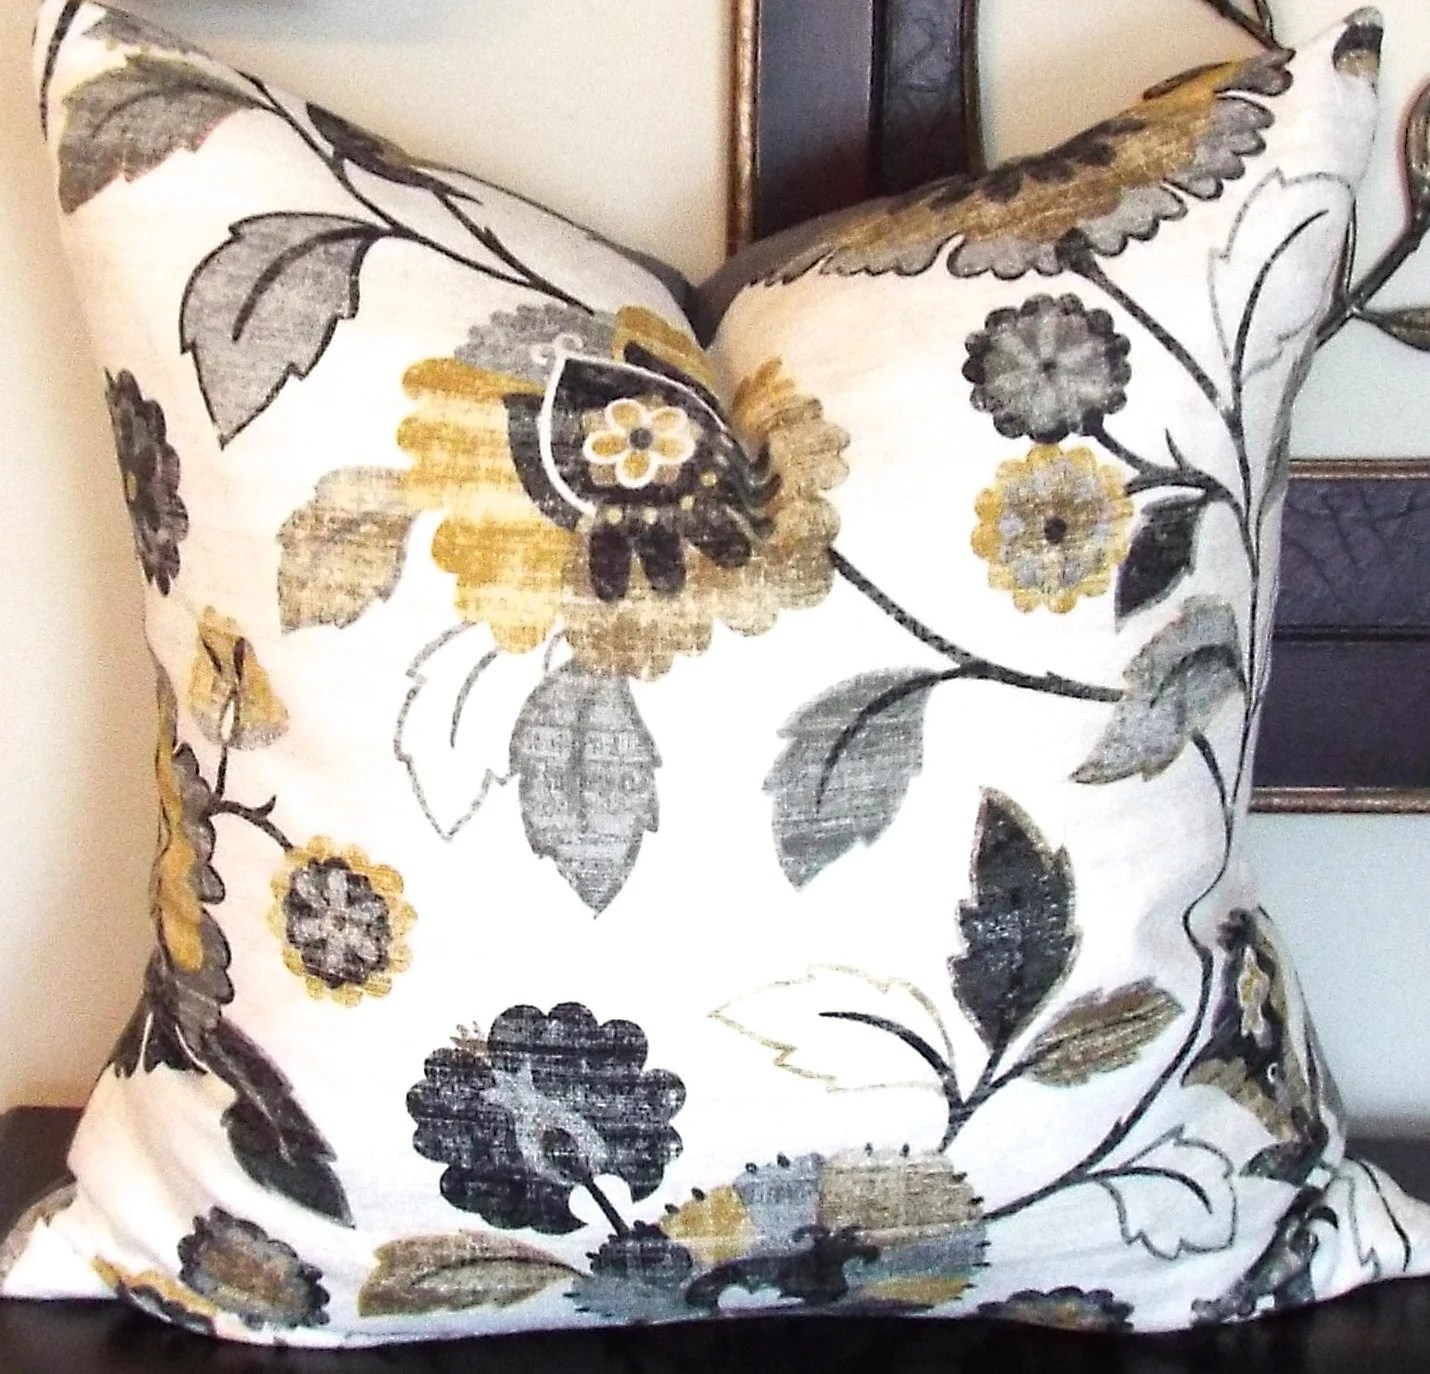 sofa cushion inserts pomona reviews gold floral throw pillow decorative pillows gray